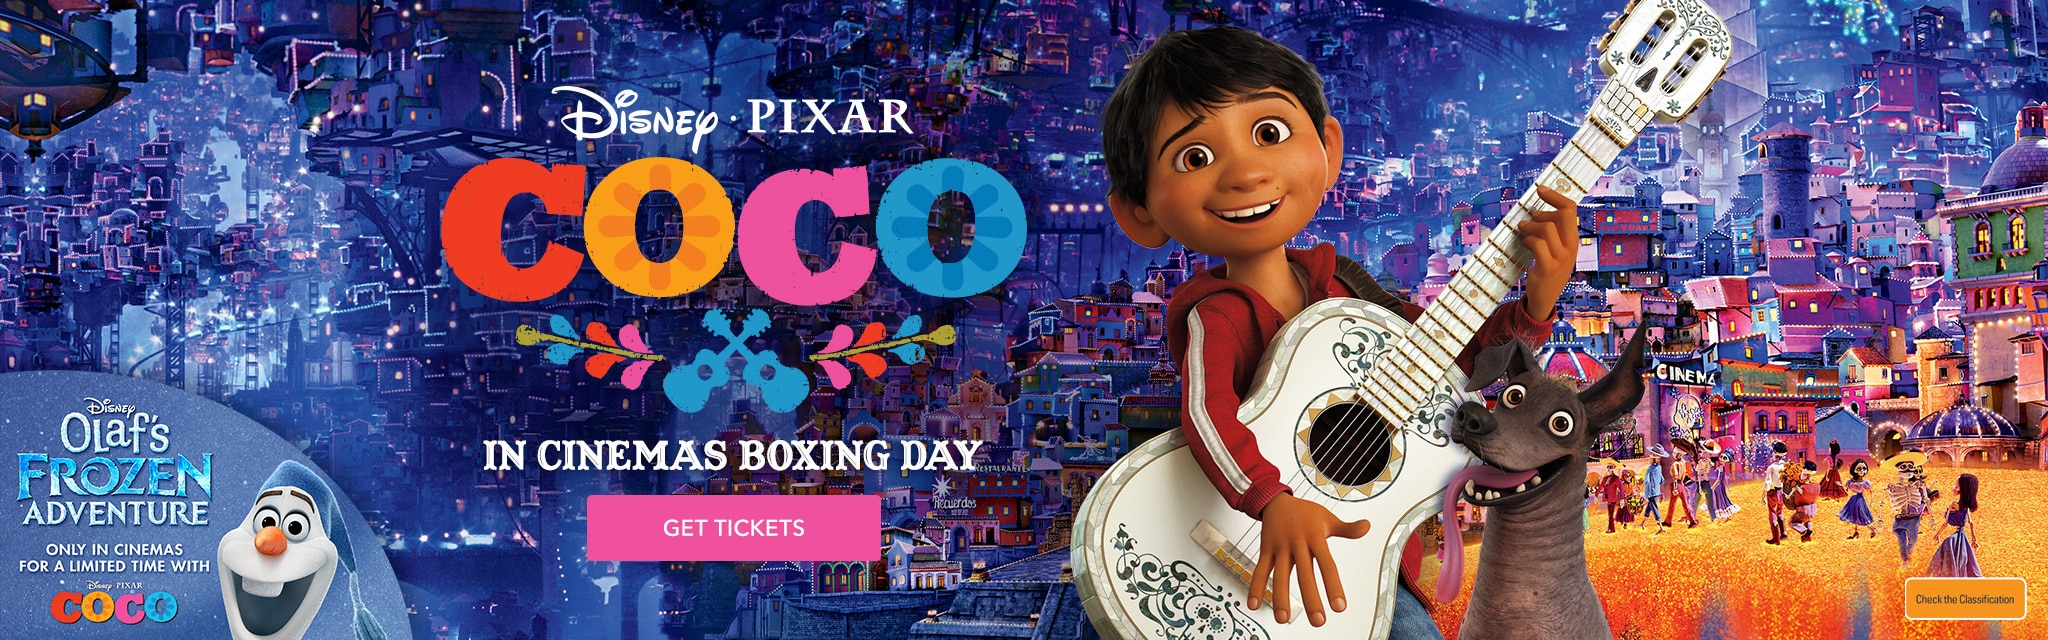 Coco - In Cinemas Boxing Day - With OFA promo - Homepage Hero - AU